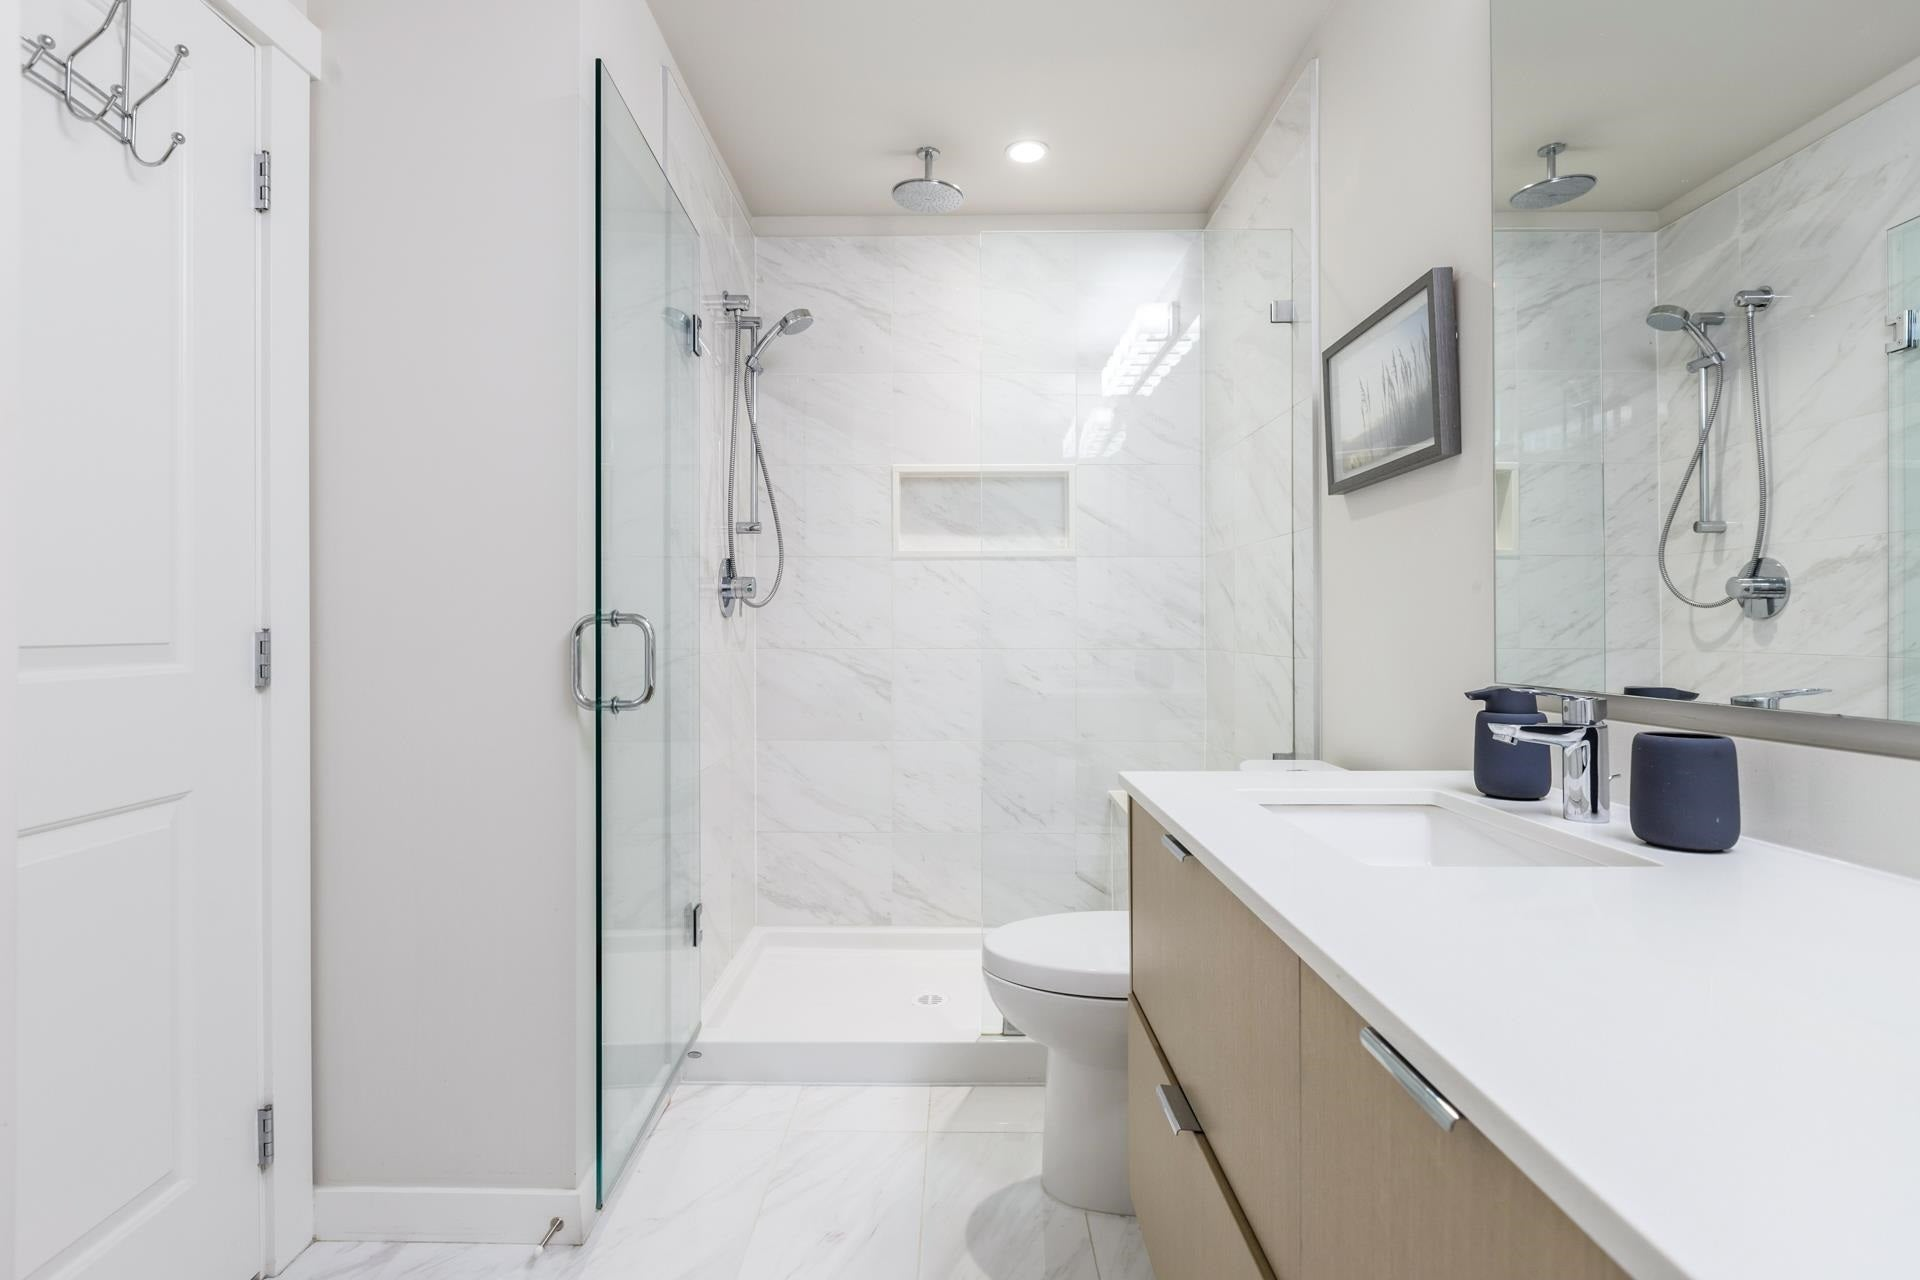 207 255 W 1ST STREET - Lower Lonsdale Apartment/Condo for sale, 2 Bedrooms (R2603882) - #18